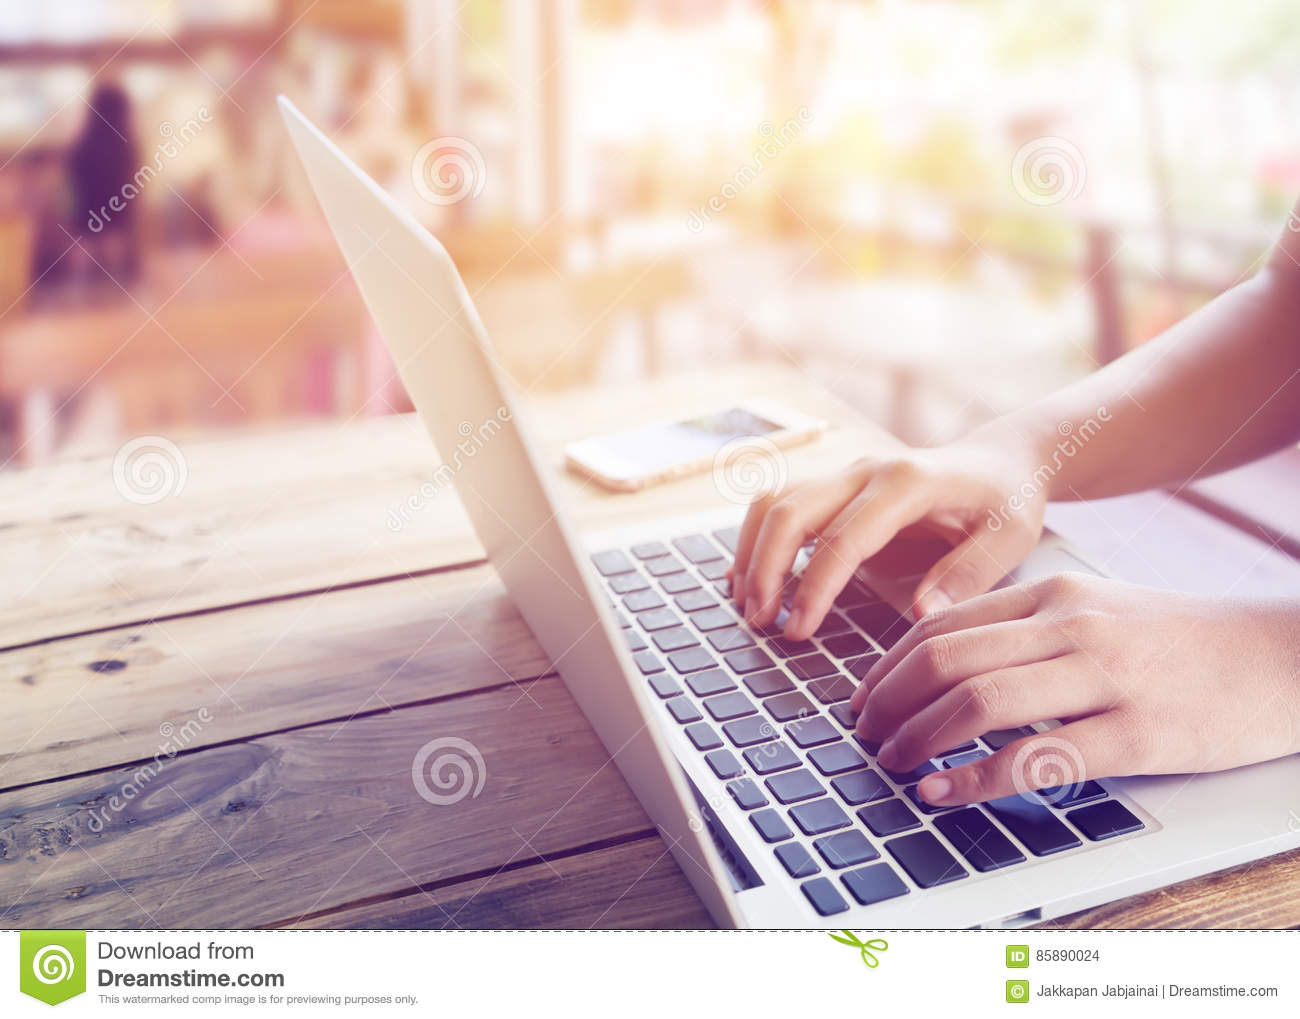 beautiful young hipster woman`s hands busy working on her laptop sitting at wooden table in a coffee shop